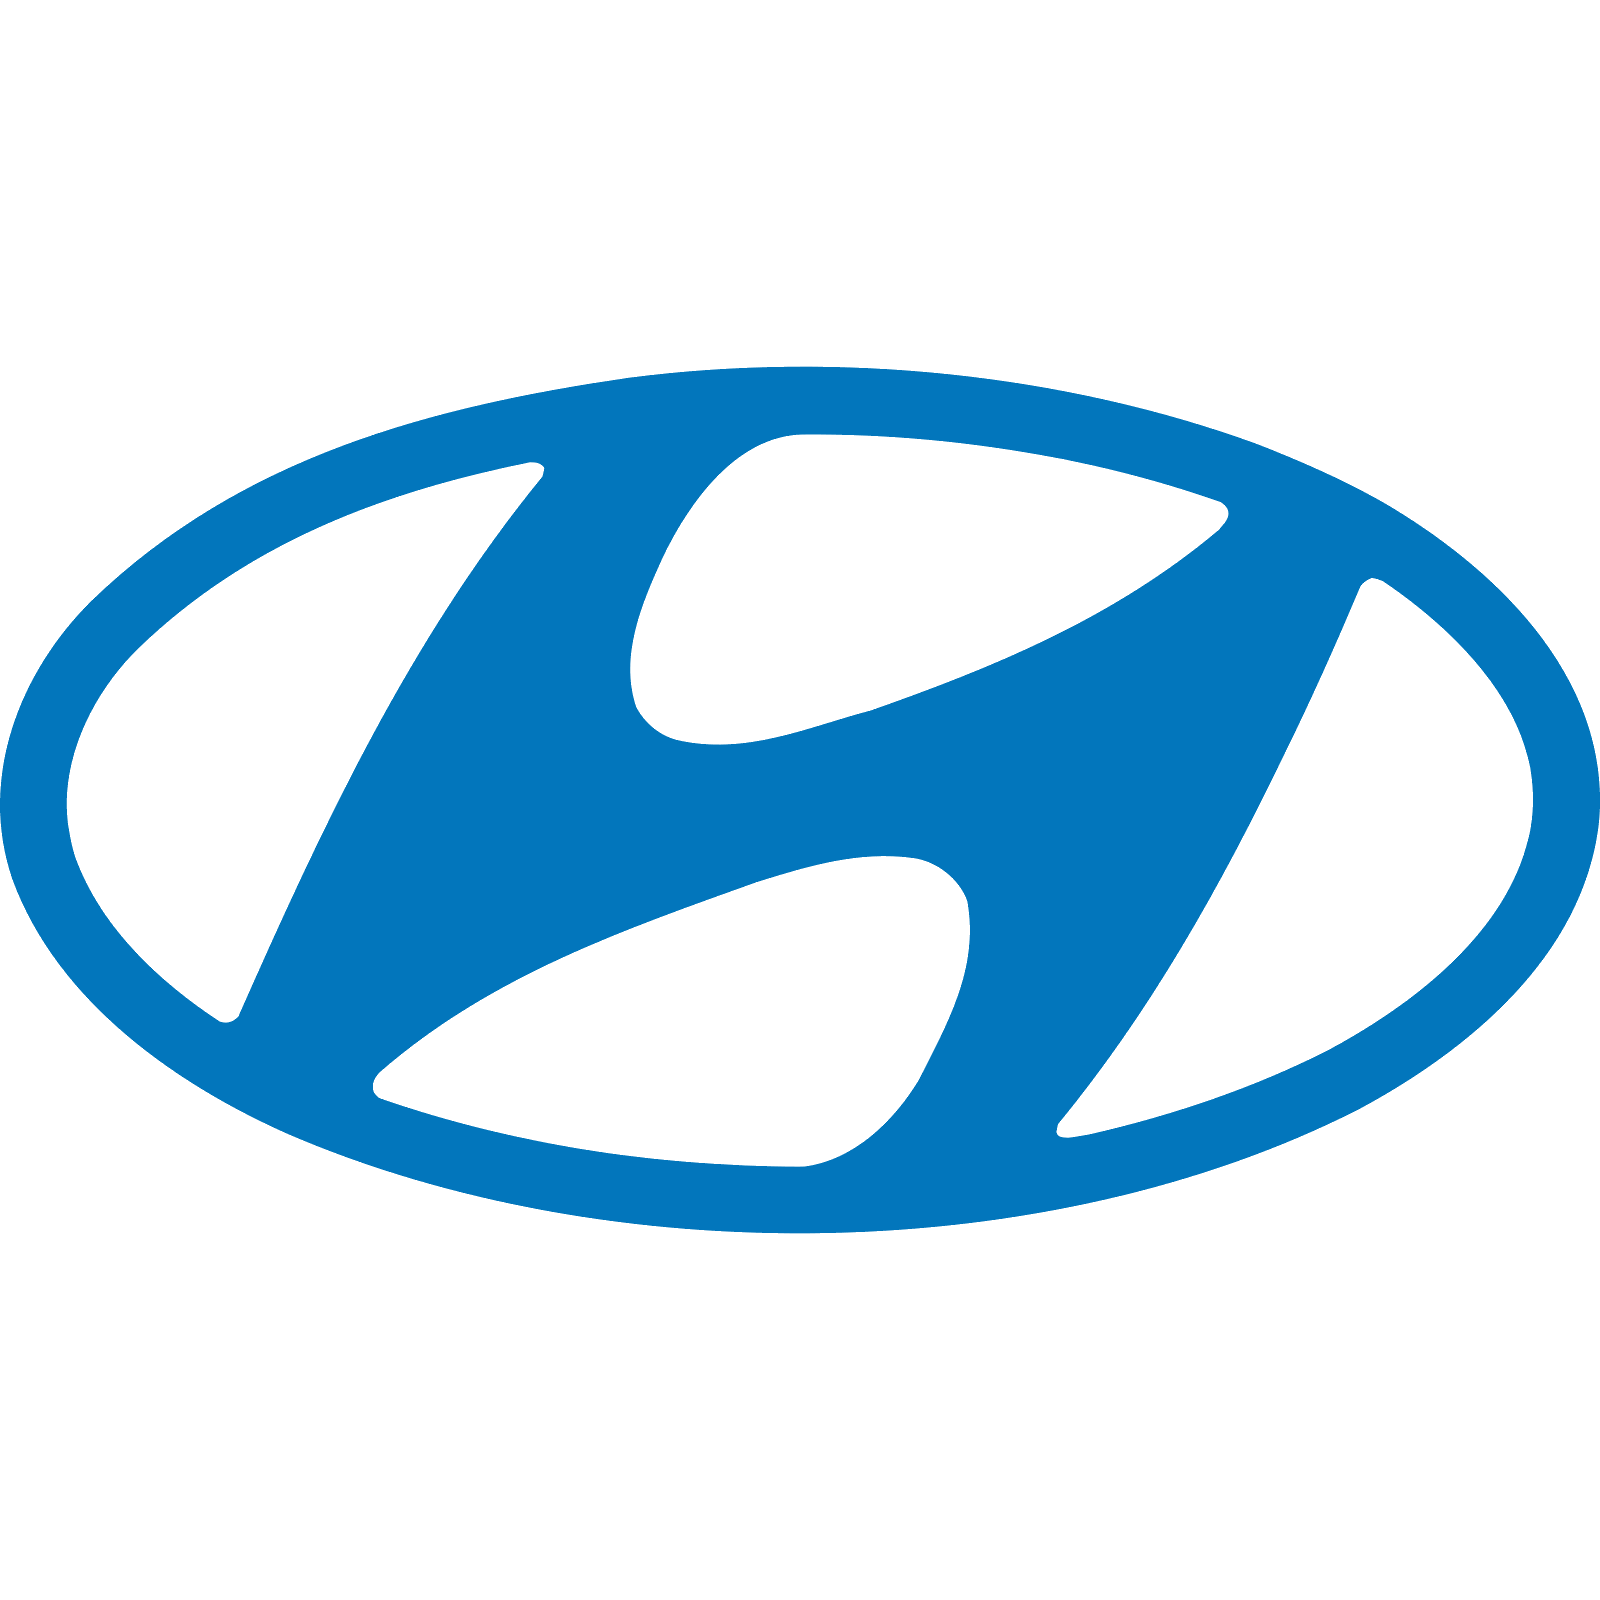 Hyundai logo clipart transparent library Free Hyundai Clipart vector, Download Free Clip Art on Owips.com transparent library